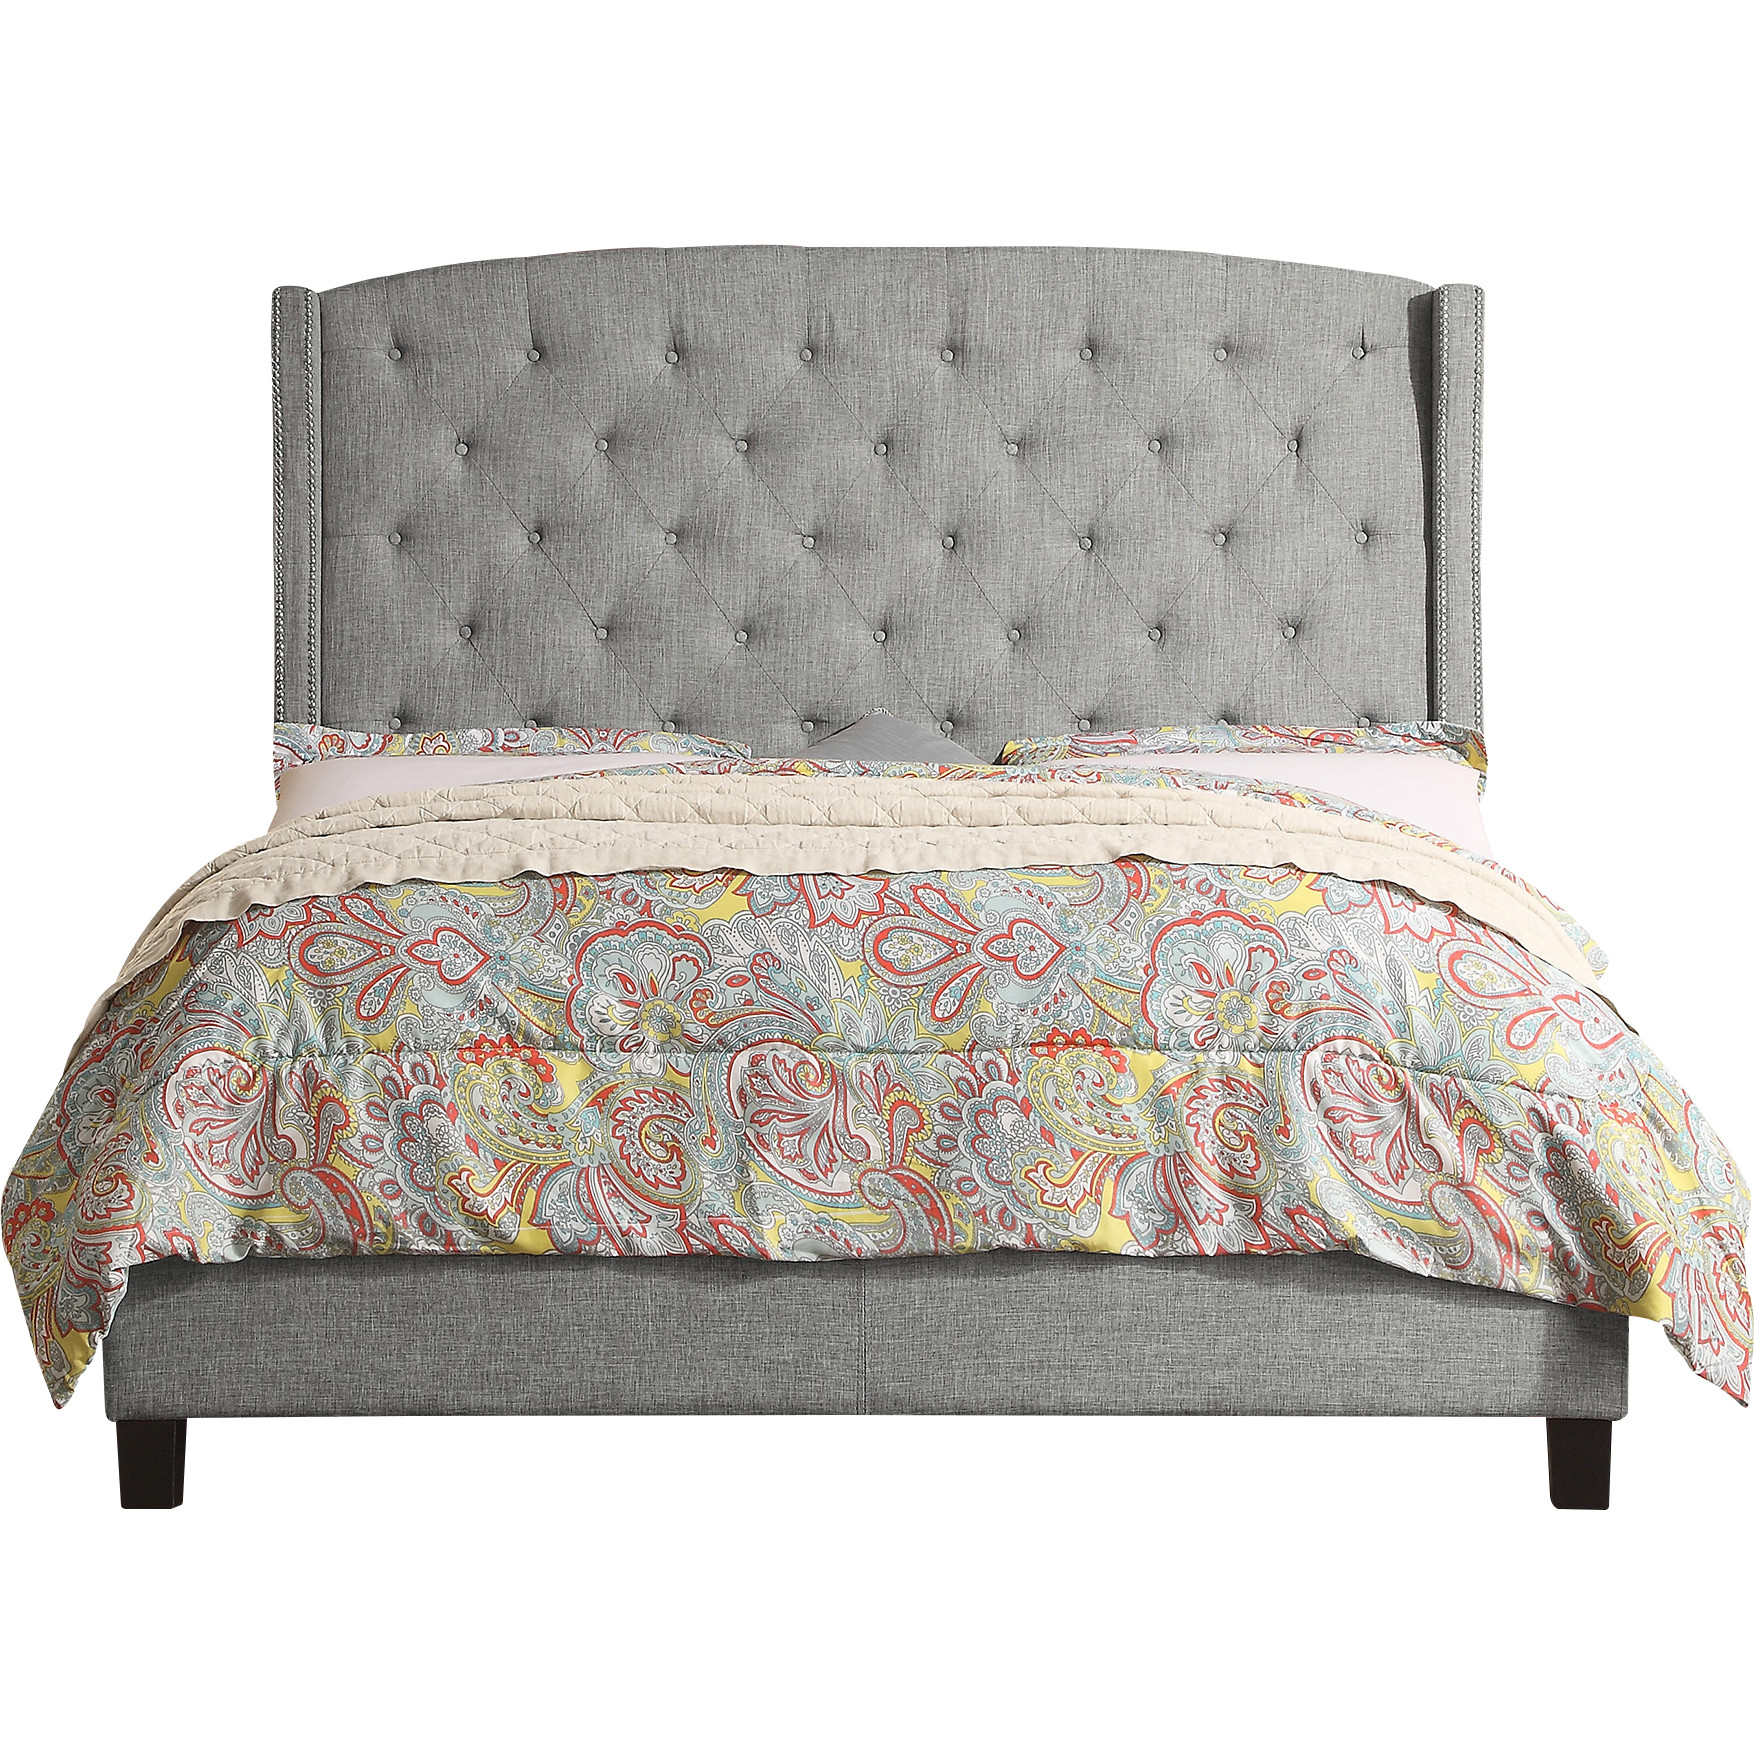 Alton Furniture Lucia King Upholstered Panel Bed, Gray by Fully Wind Co, Ltd.